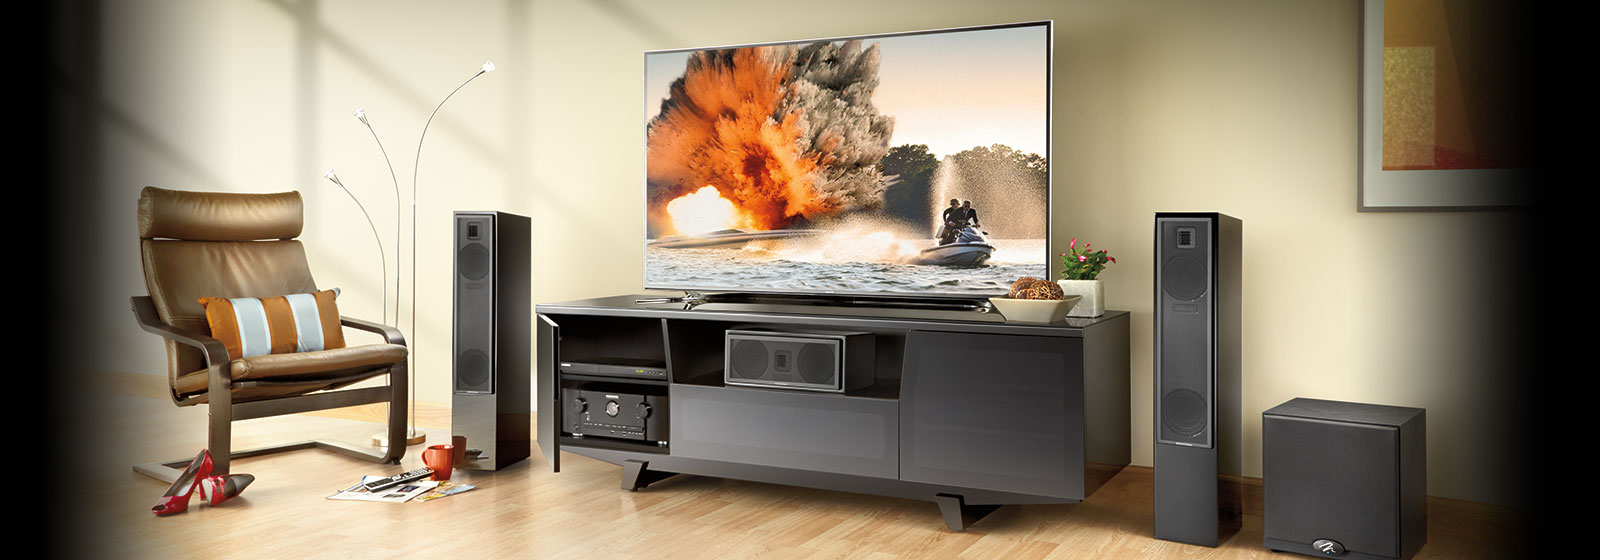 Best Buy Bridgewater Nj | Magnolia Hifi Bellevue | Magnolia Home Theater